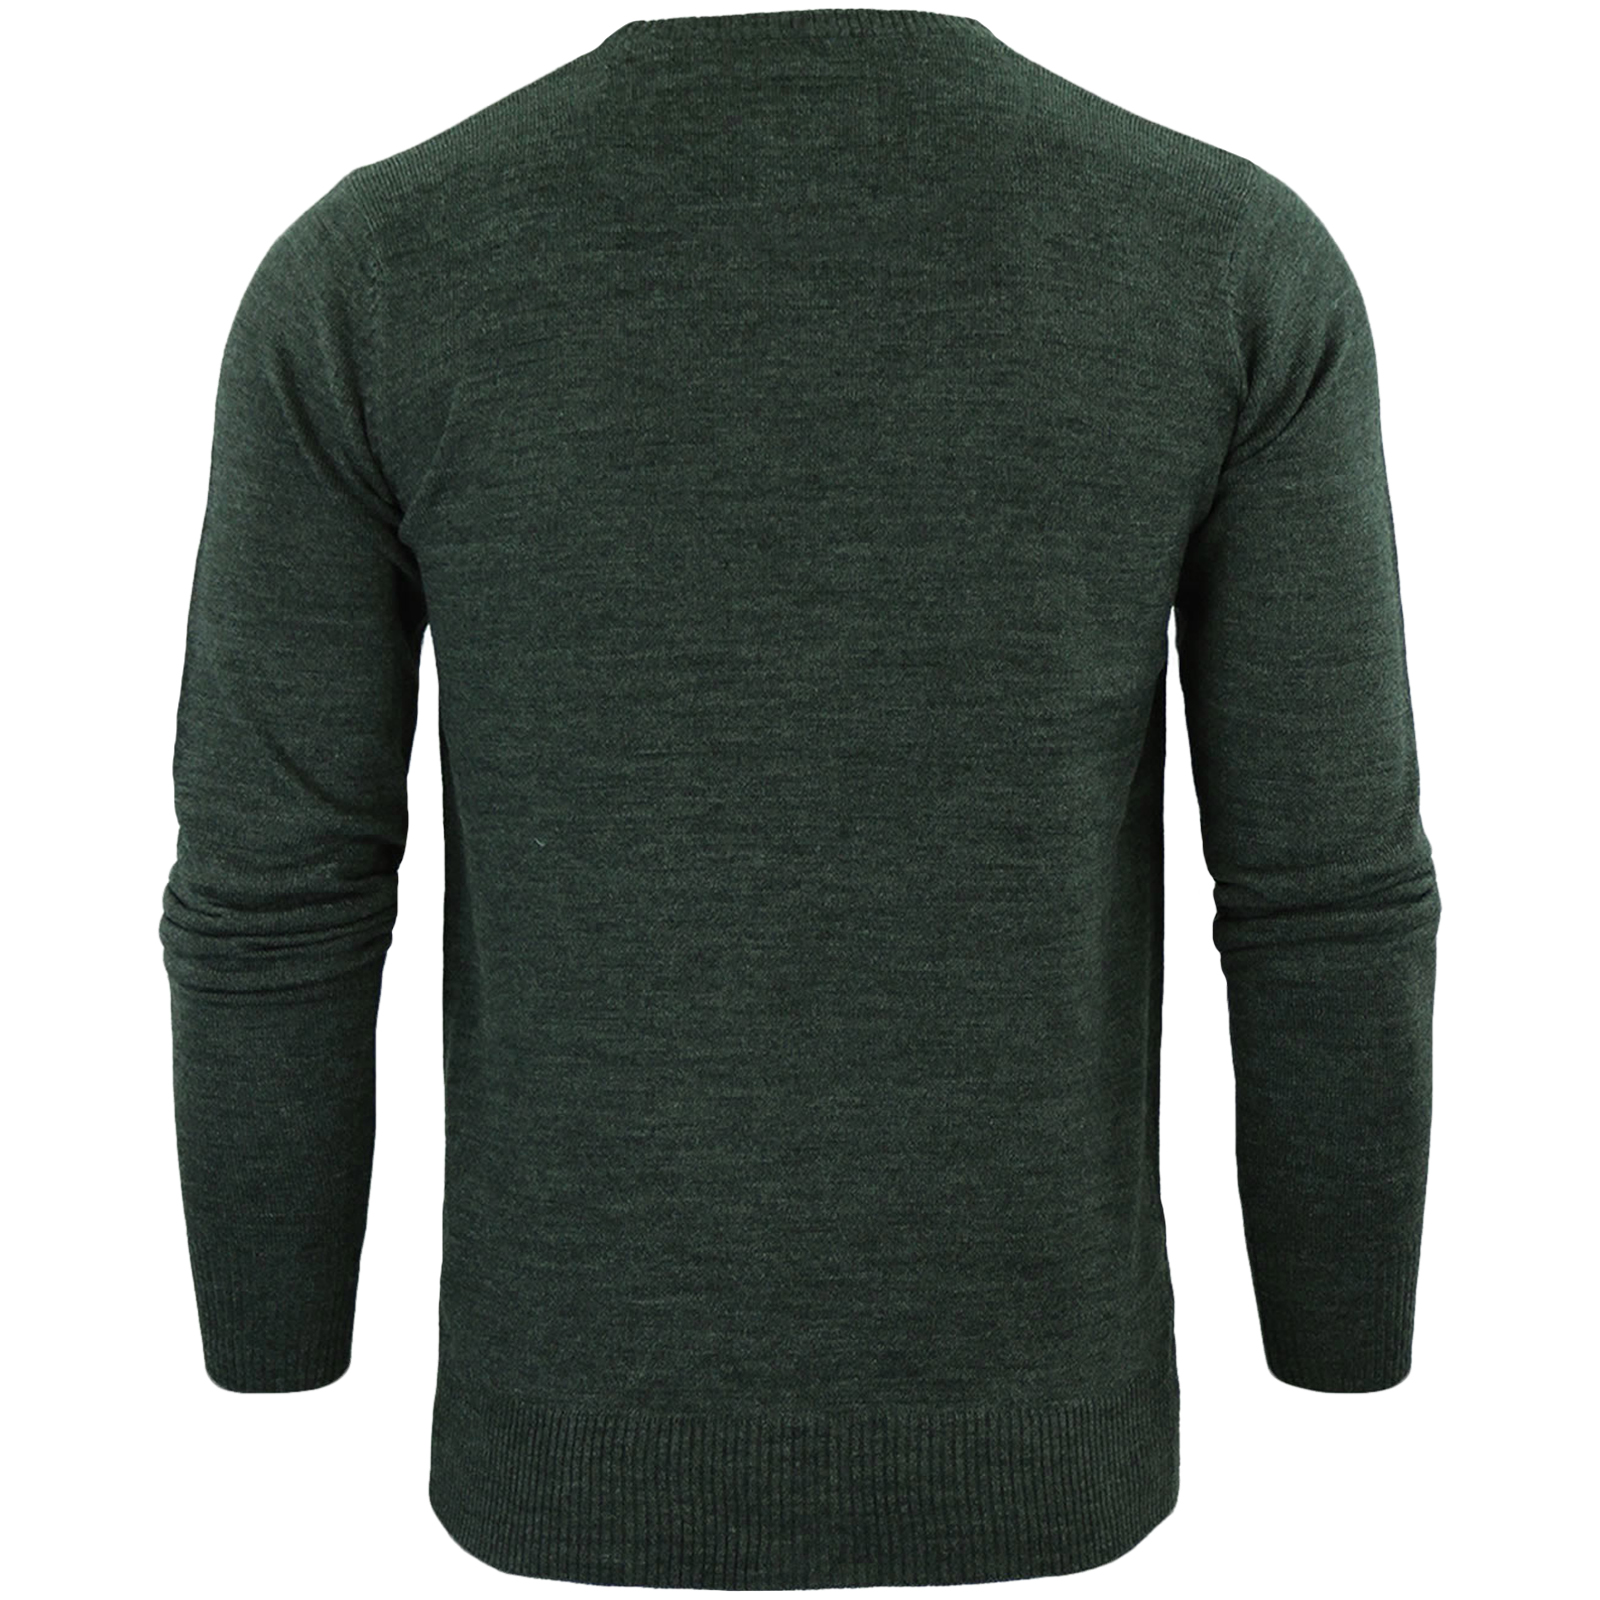 Brave-Soul-Mens-Parse-Knitted-Long-Sleeve-Crew-Neck-Jumper-Sweater-Pullover-Top thumbnail 17